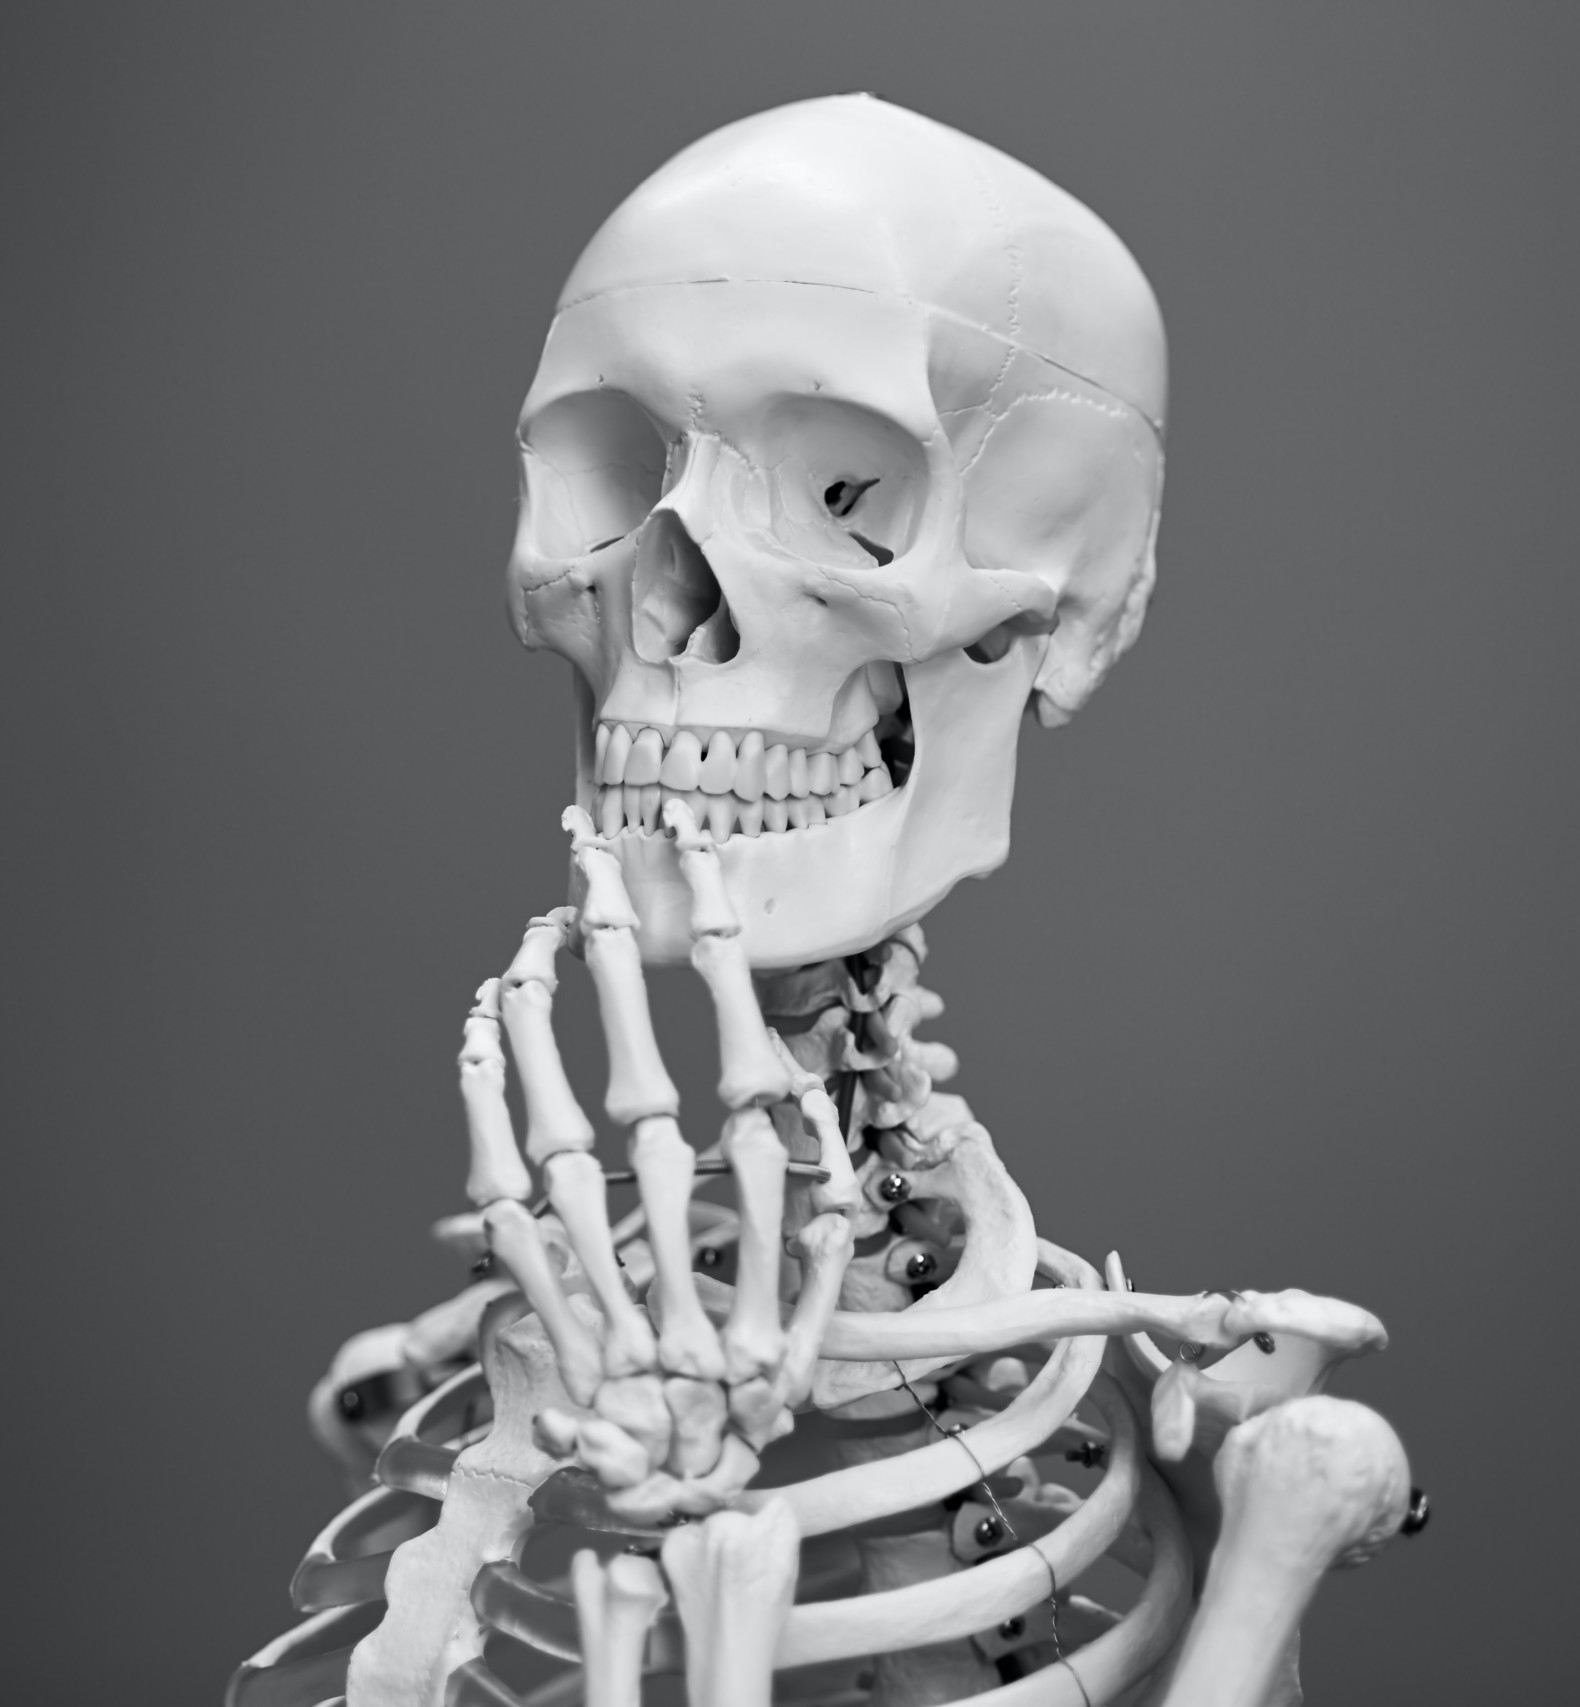 Peak bone mass density reached in your 20's